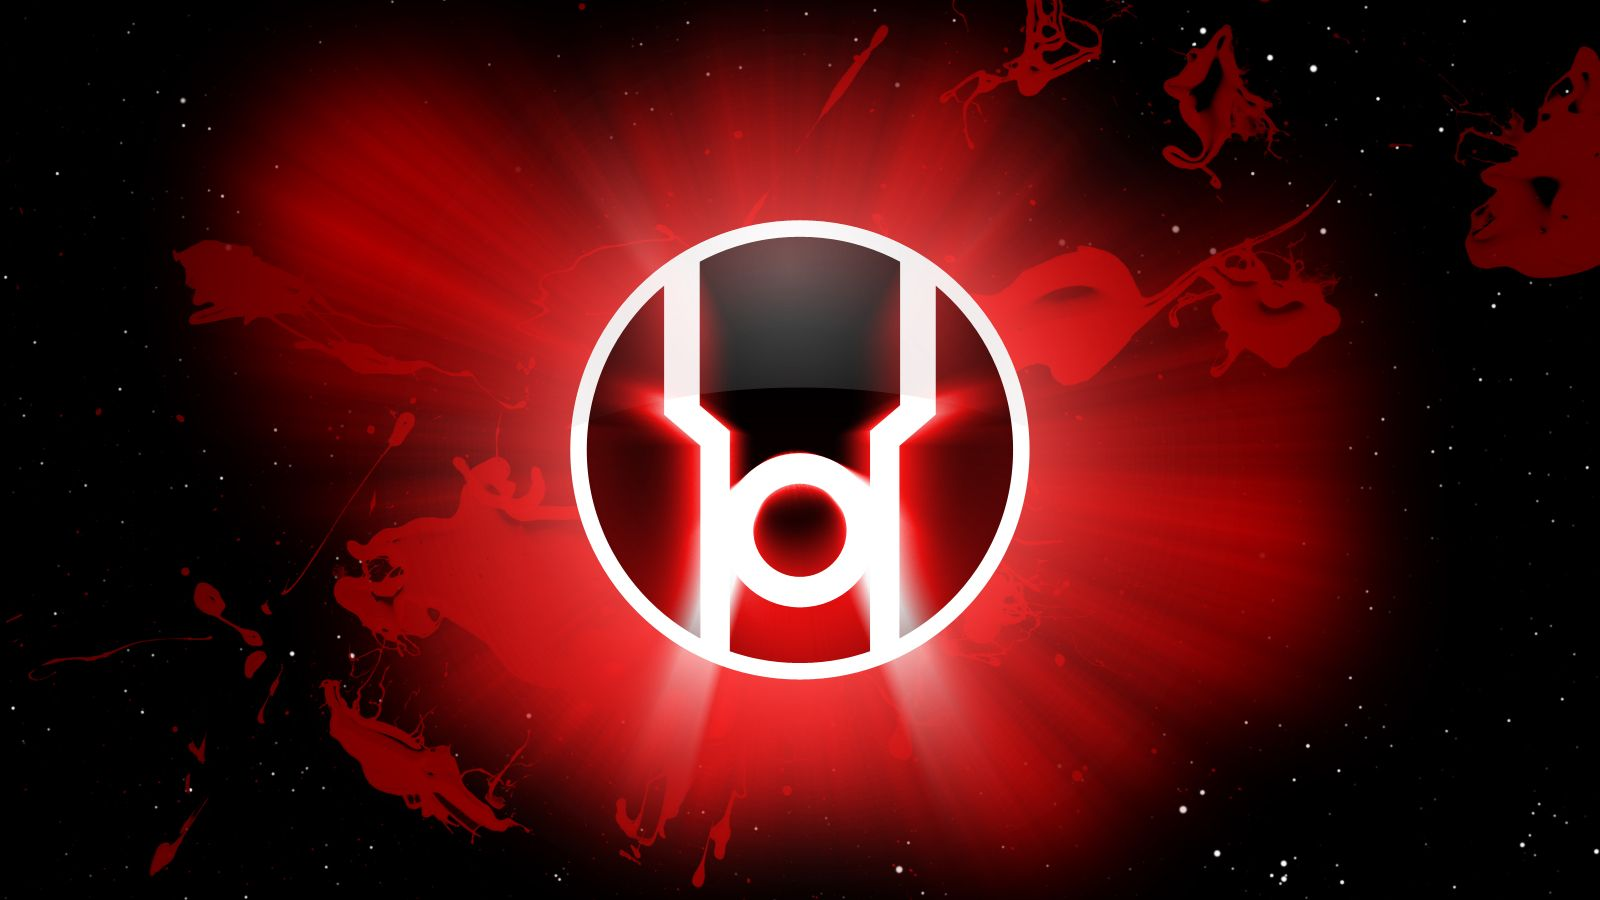 red lantern logo in space | zoom comics - daily comic book